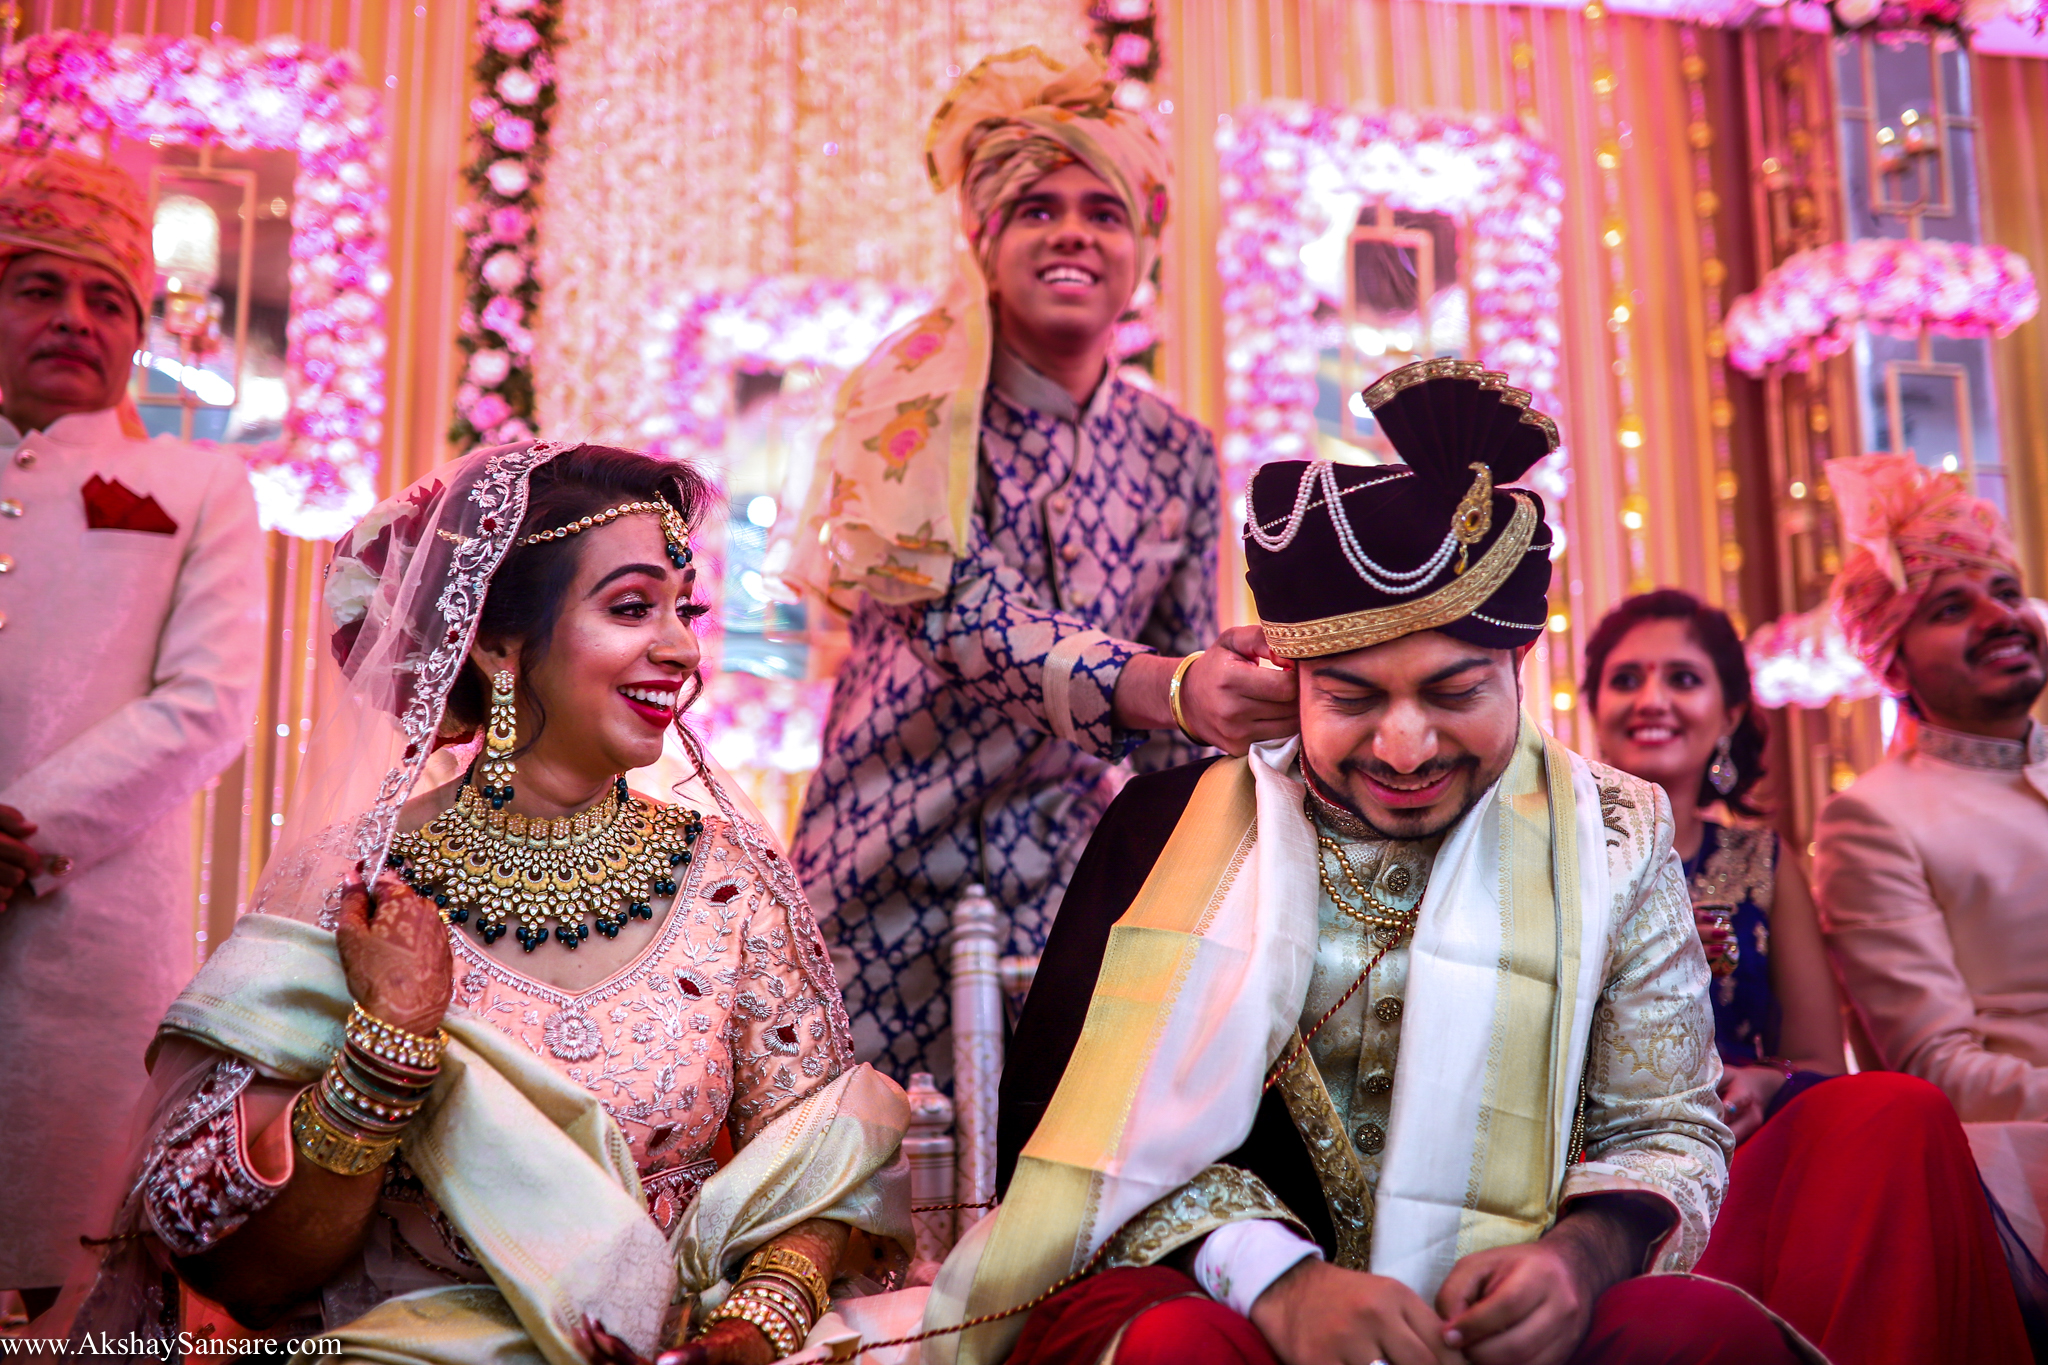 Nupur & Rohan wedding Akshay Sansare Photography best wedding photographer in mumbai India Candid(51).jpg